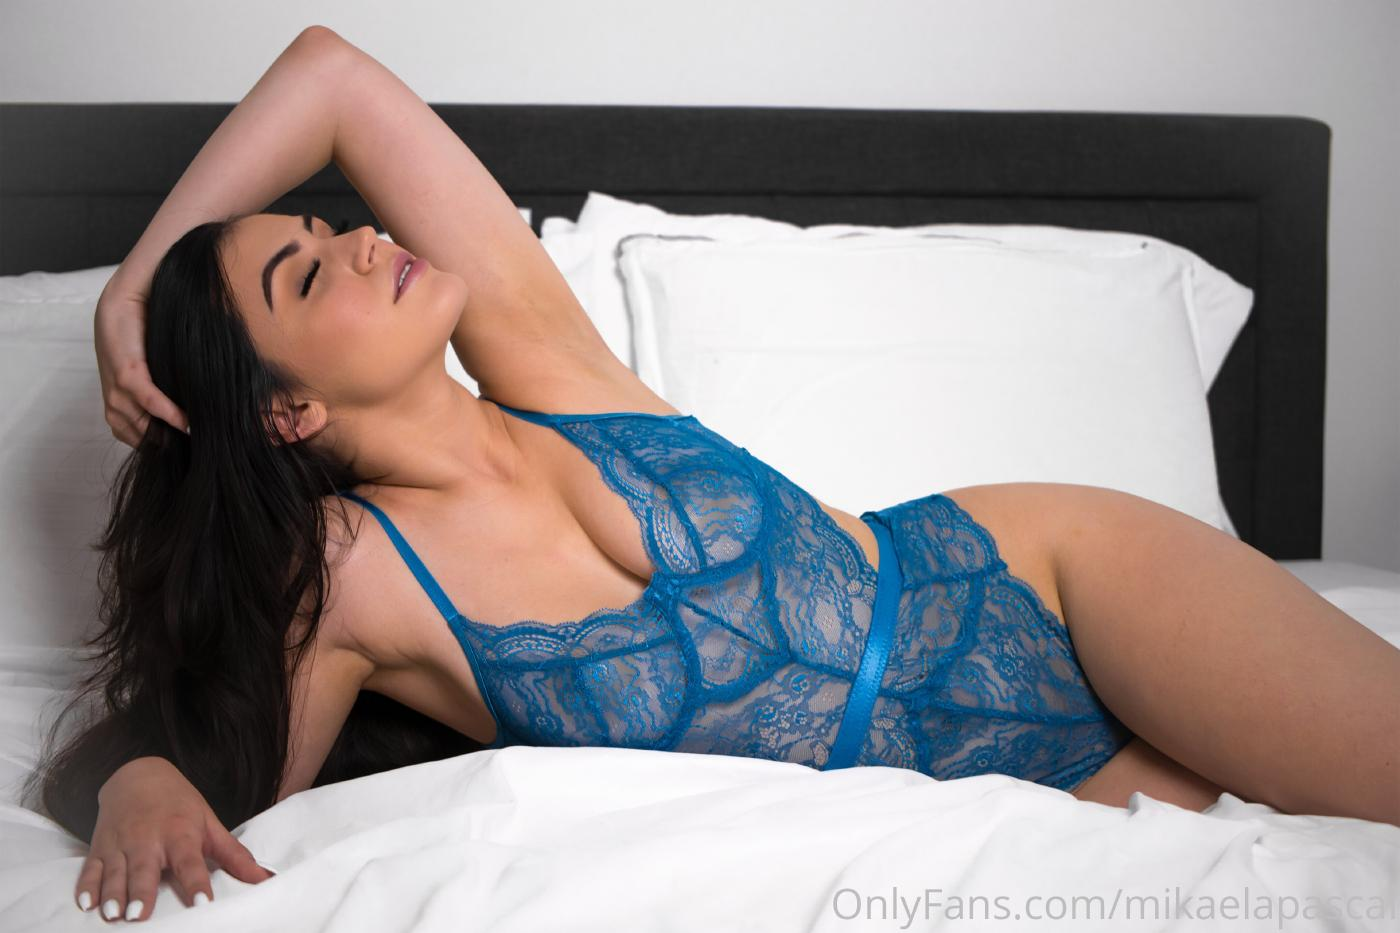 Mikaela Pascal Onlyfans April Extras Leaked 0037